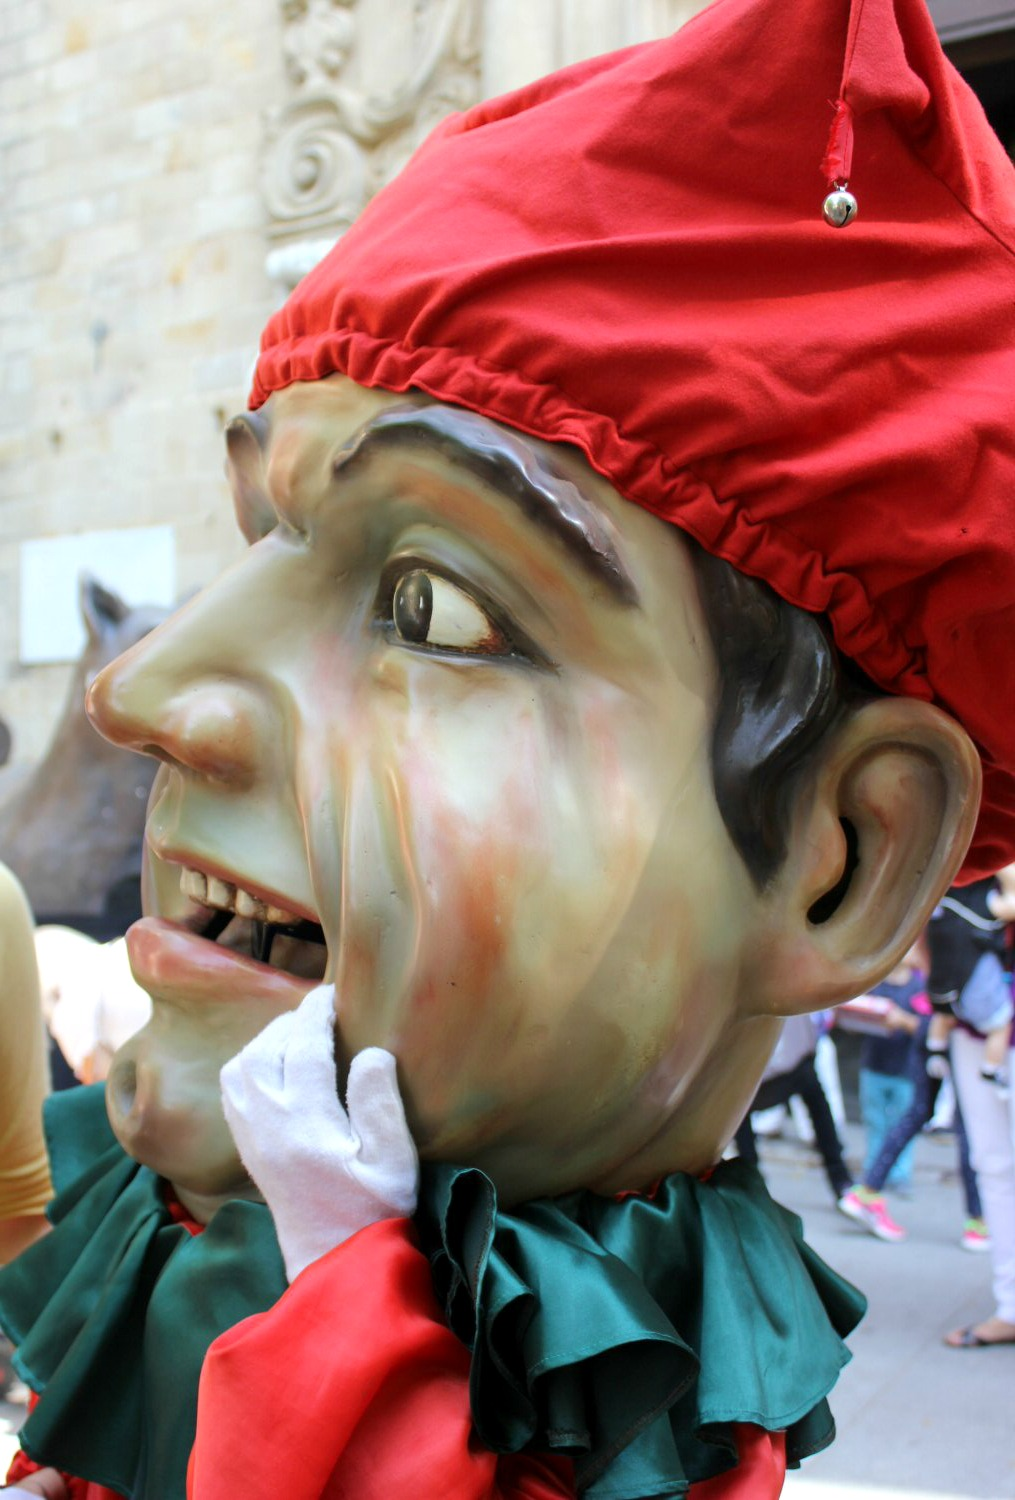 One of the traditional characters at Calella's Festa Major, a large headed jester. My photo tour of Costa Barcelona